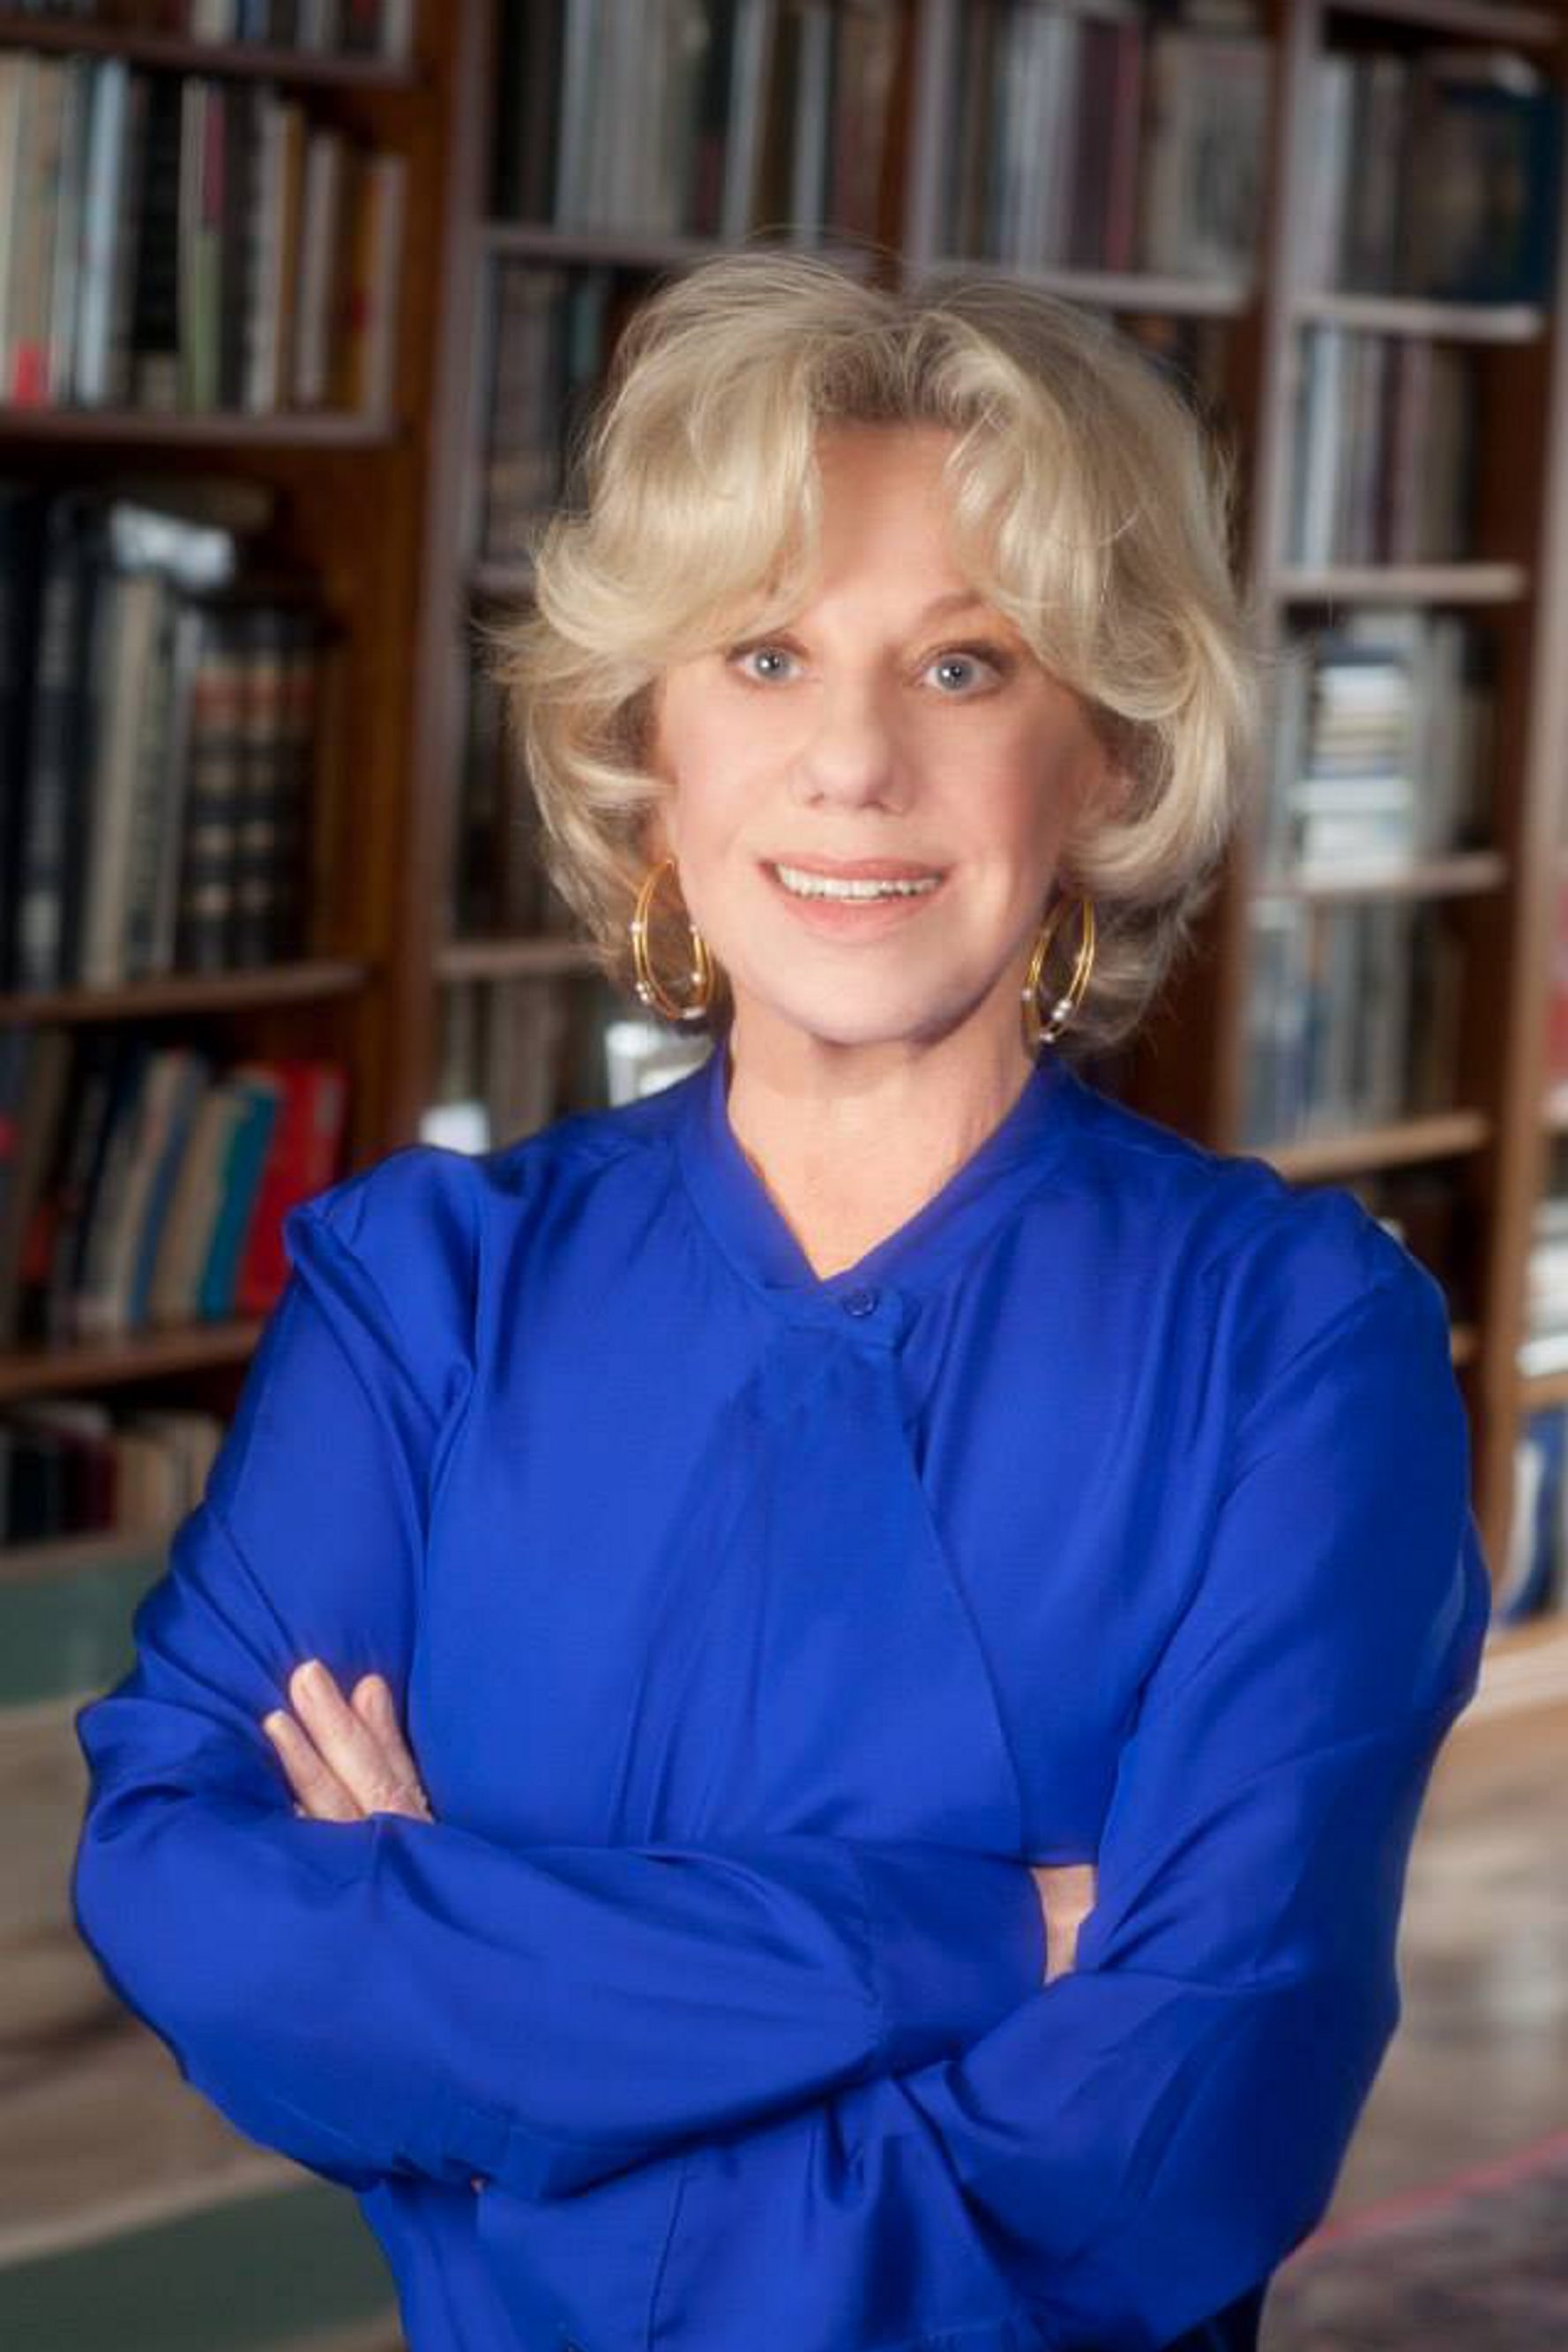 Erica Jong again draws heavily from her own experience in her new novel, which is told by an aging actress.